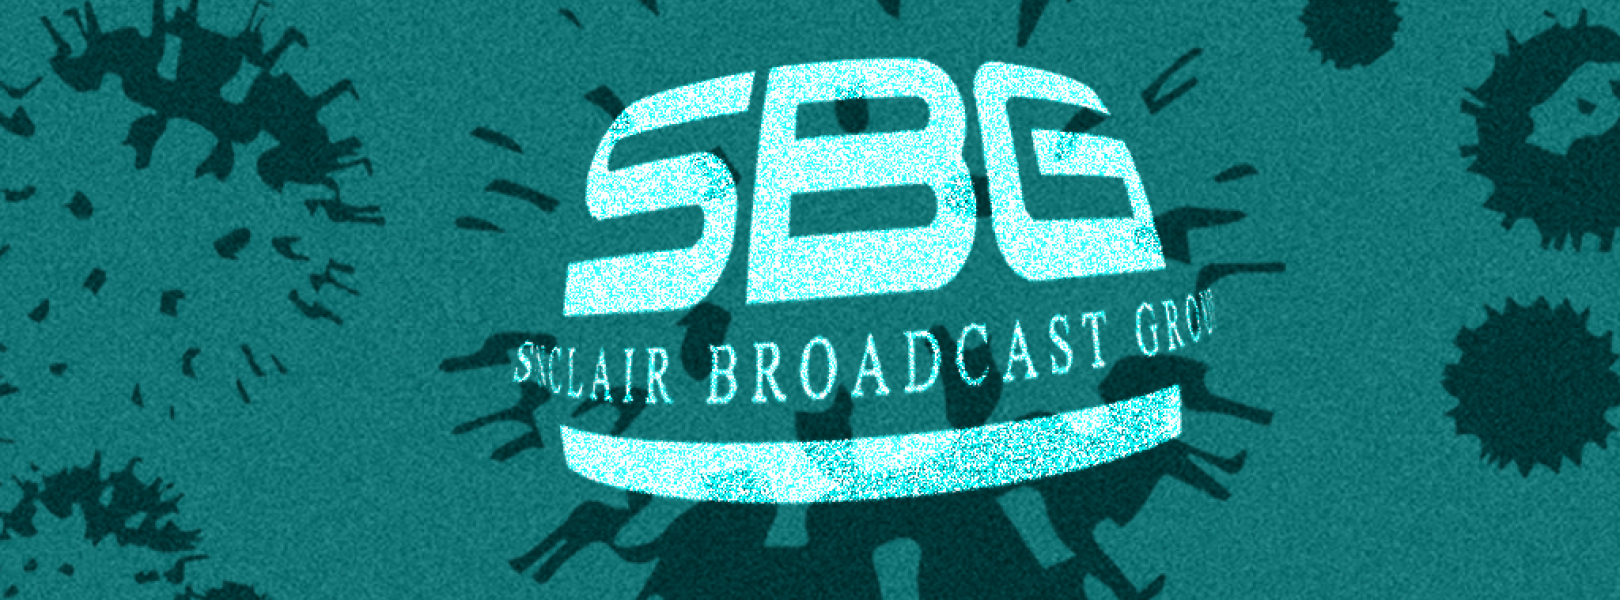 Sinclair Broadcast Group's coverage of COVID-19